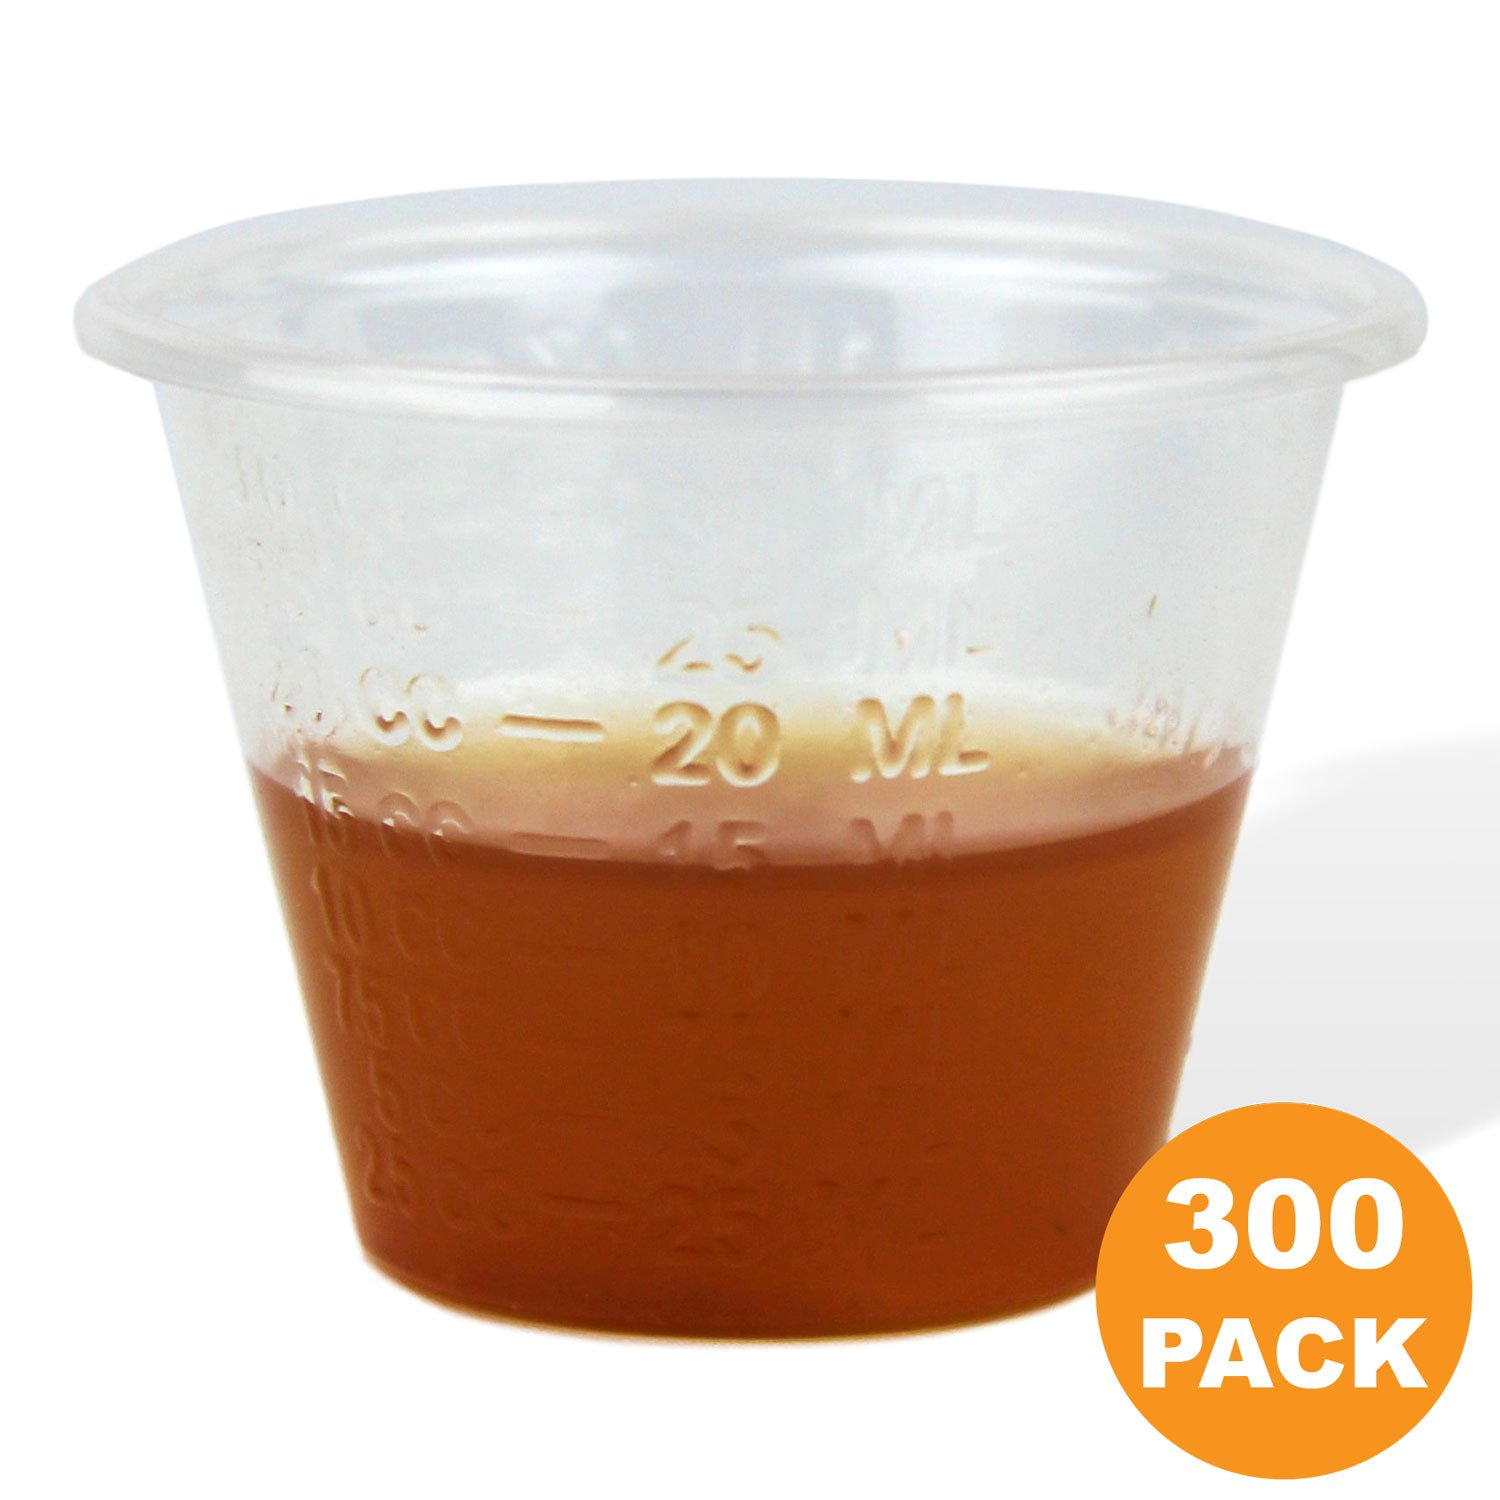 1 oz Graduated Medicine Cups – Polypropylene Disposable Measuring Cup, Mixing Cups with ML, Dram, CC, TBSP & FL oz Measurement Markings for Pill, Epoxy, Resin & Liquid/Powder - 300 Cups